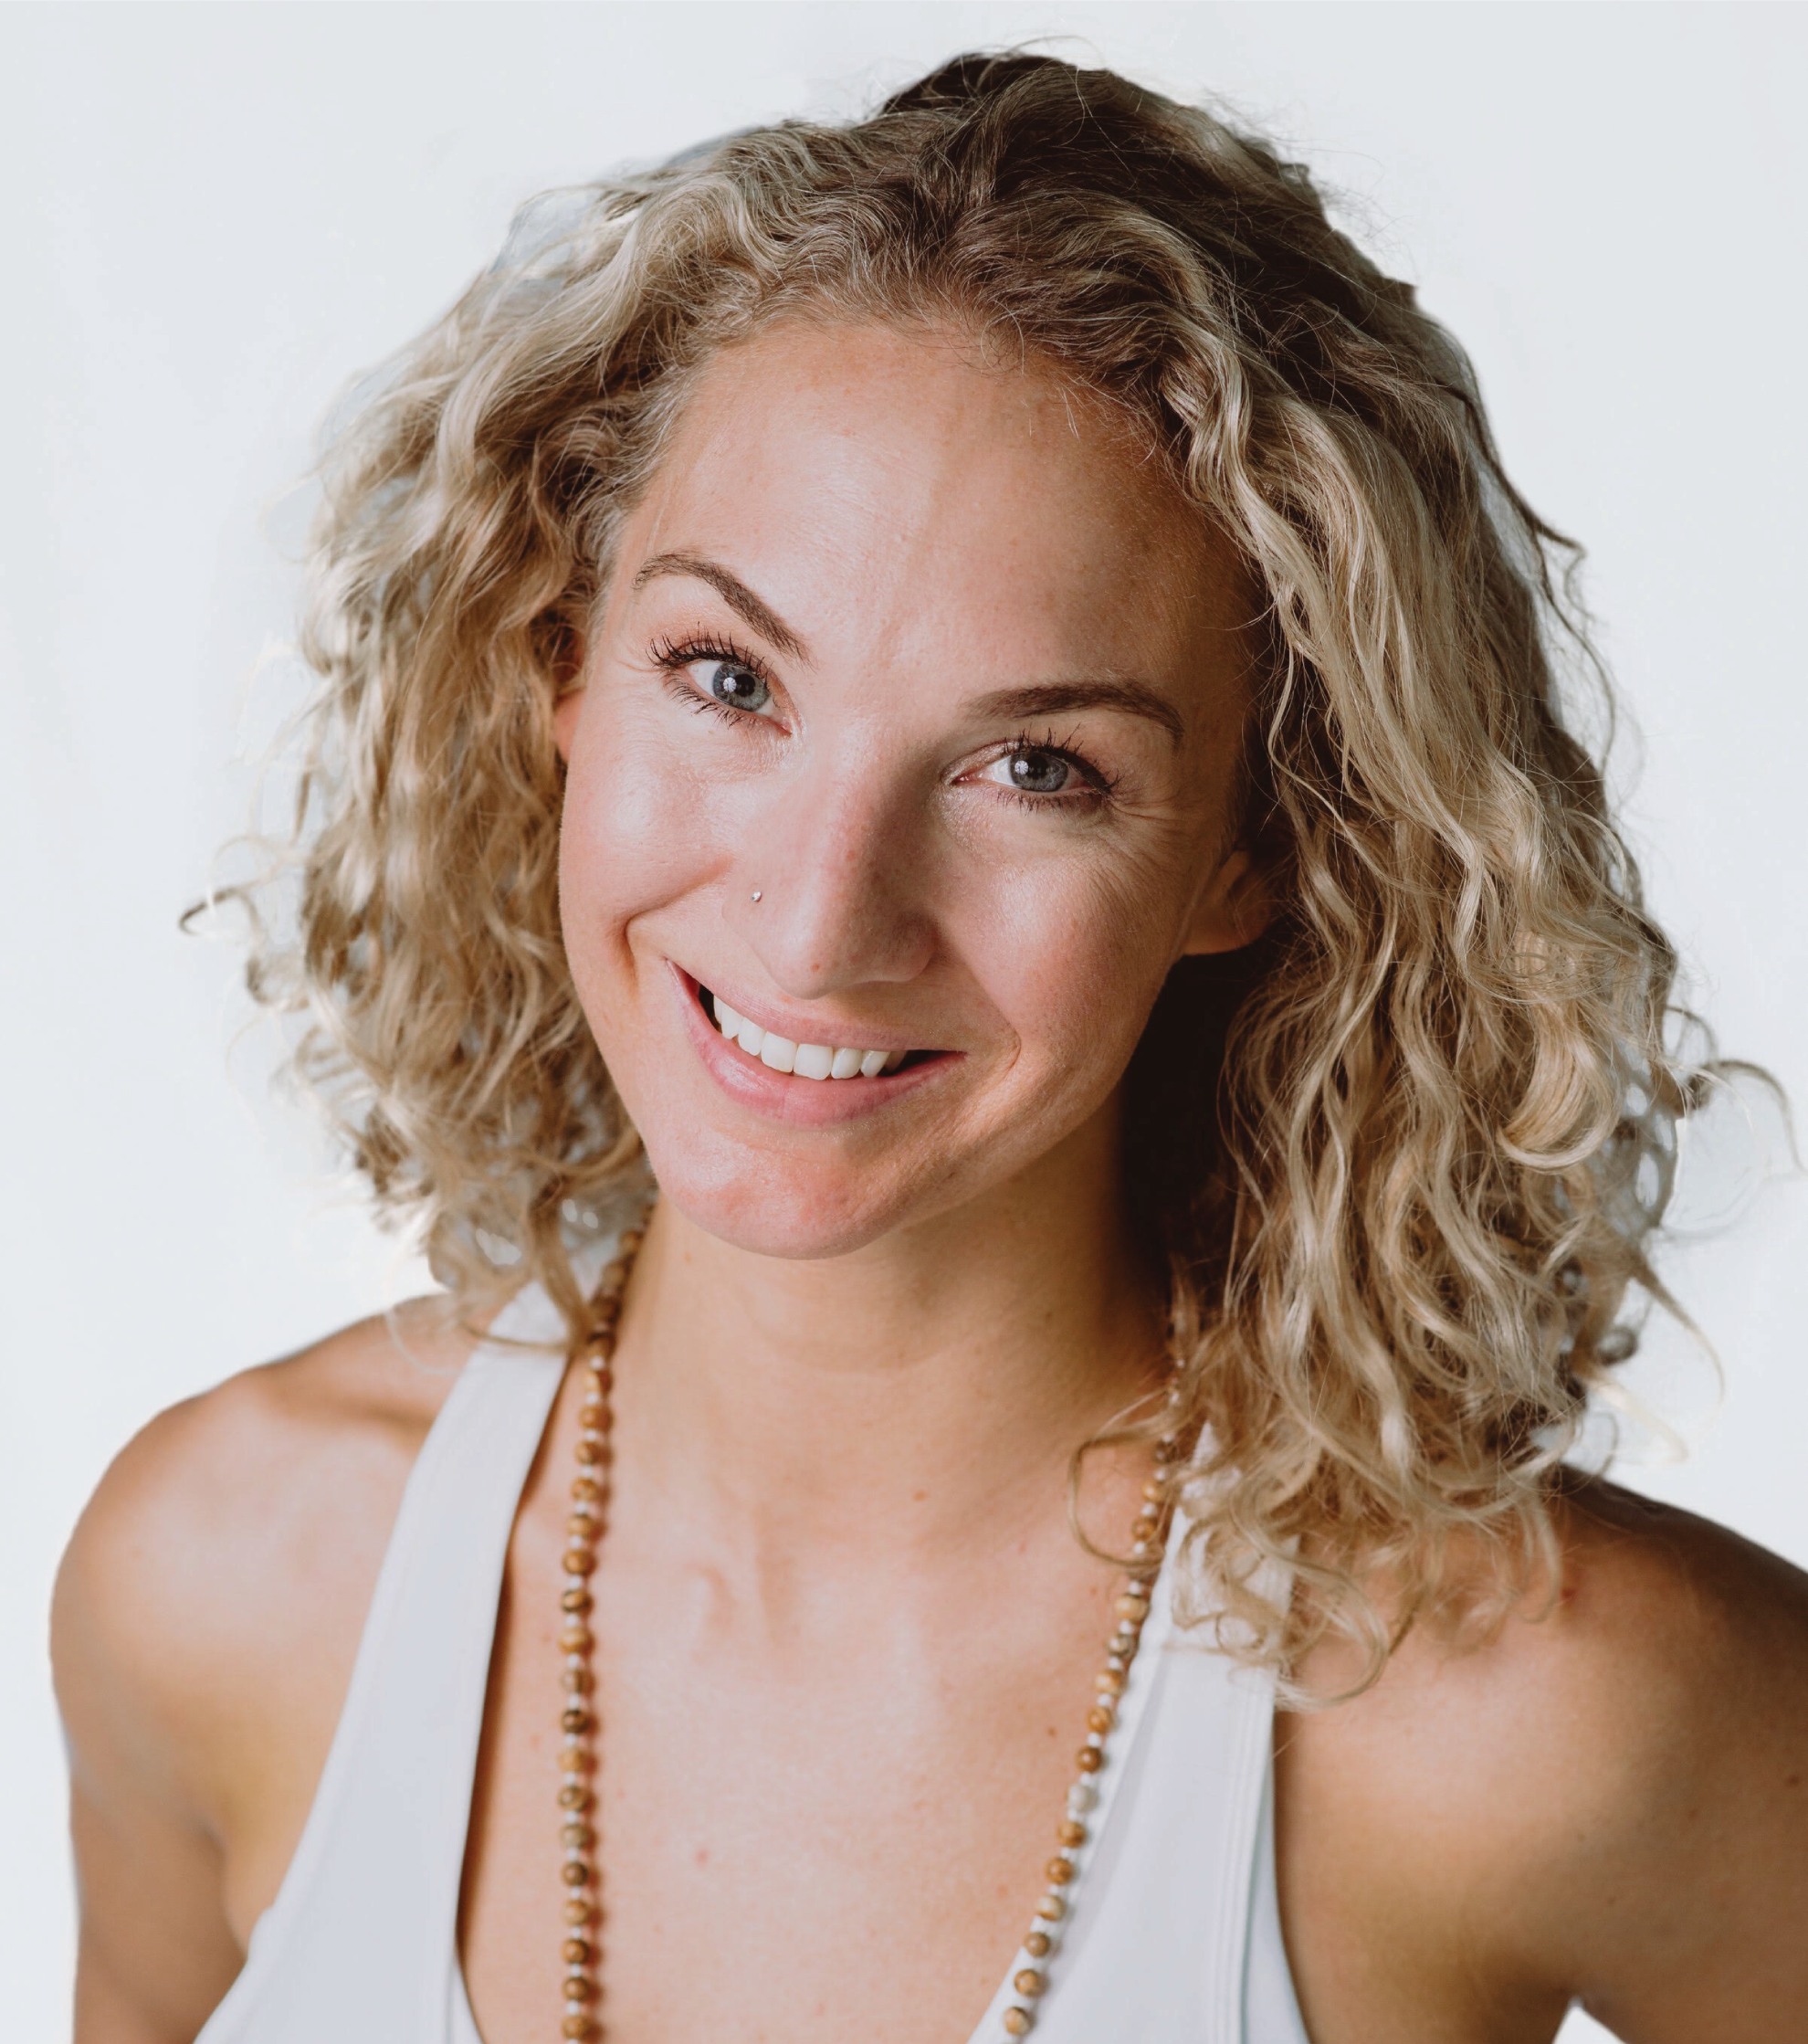 Tiffani Harris - Tiffani Harris is an Ottawa based yoga instructor and RMT who loves leading classes, teacher training, workshops and retreats. As an experienced educator participating in over 10 Yoga Teacher Training programs and counting she loves to share her passion for Anatomy and safe movement. She is passionate about helping people feel their best and encourages relaxation and the power of touch with offerings such as Yogassage and the Art of Adjustments. She supports her community as a Lululemon brand ambassador and creating fun events such as yoga Jam the fusion of yoga and dance party! I love to teach yoga because sharing the practice of self-study and the tools to help manage life and its stressors can lead to living the healthiest, happiness and most whole version of the self. I also find it personally a creative outlet and fosters a deep connection to the community.